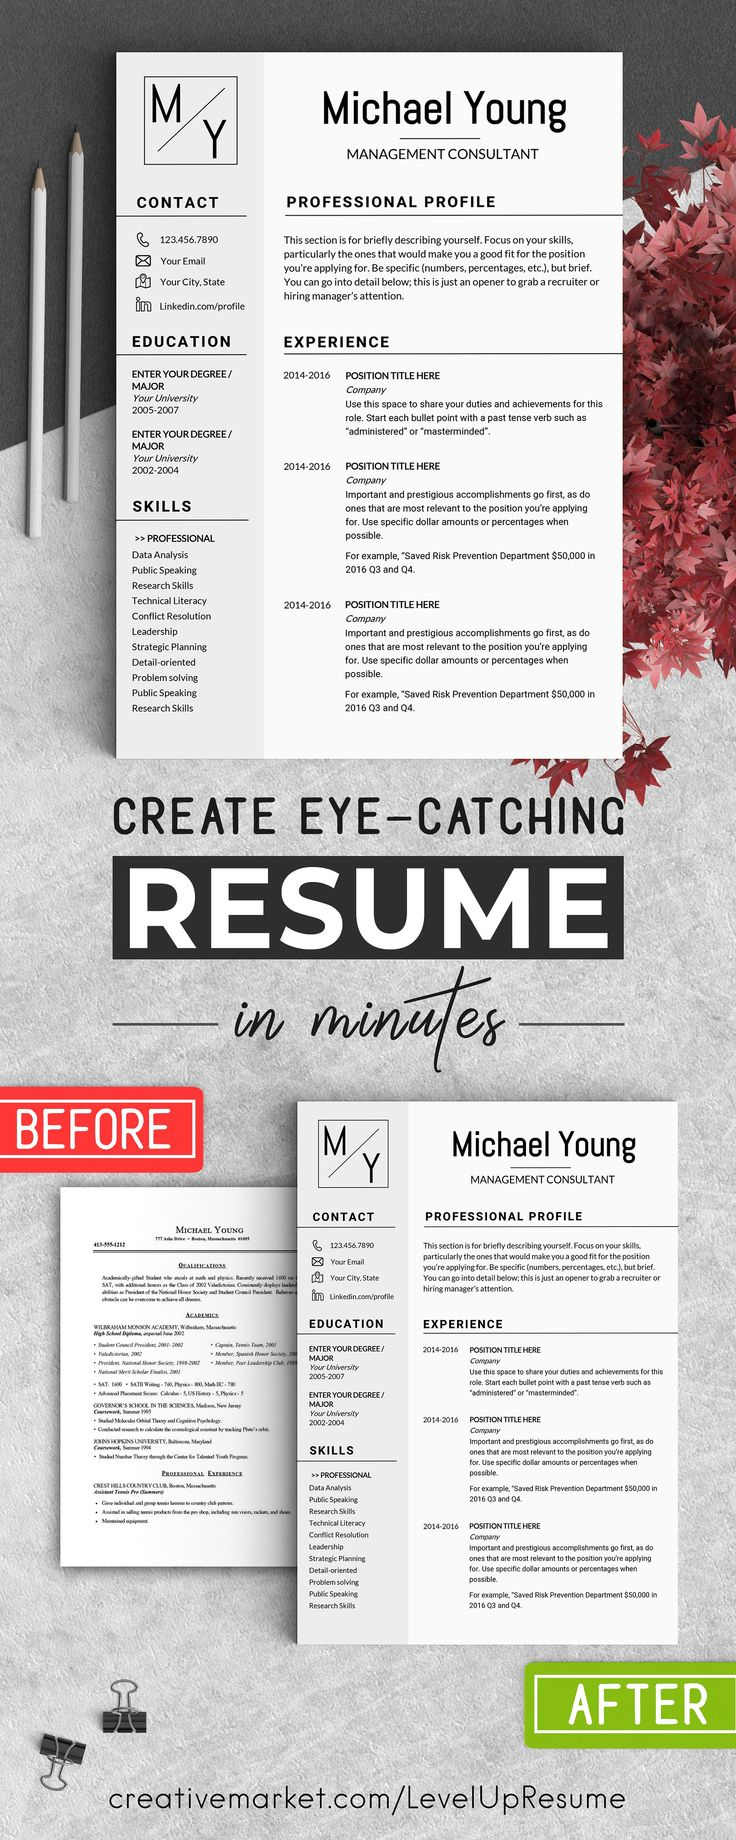 Best 25+ Skills on resume ideas on Pinterest | Resume, Resume help ...